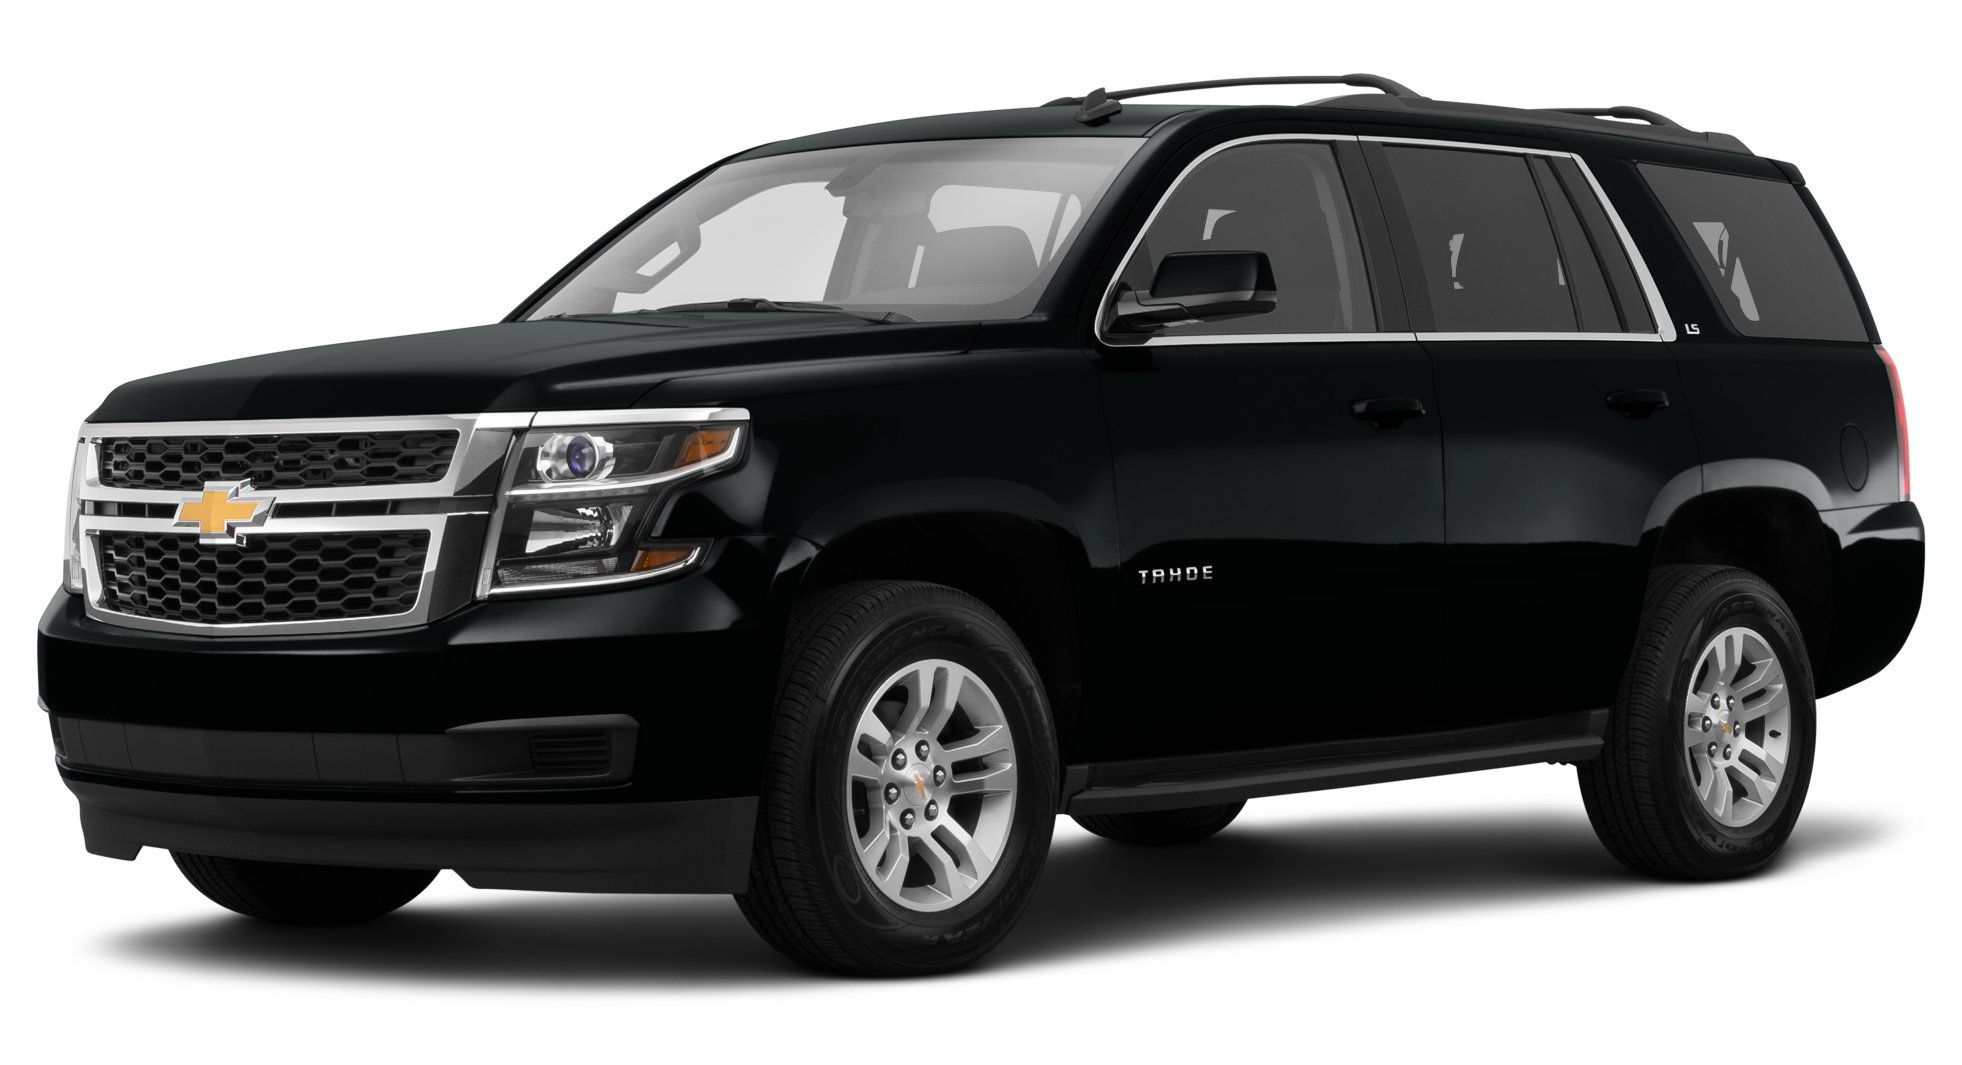 2015 chevrolet tahoe reviews images and specs vehicles. Black Bedroom Furniture Sets. Home Design Ideas